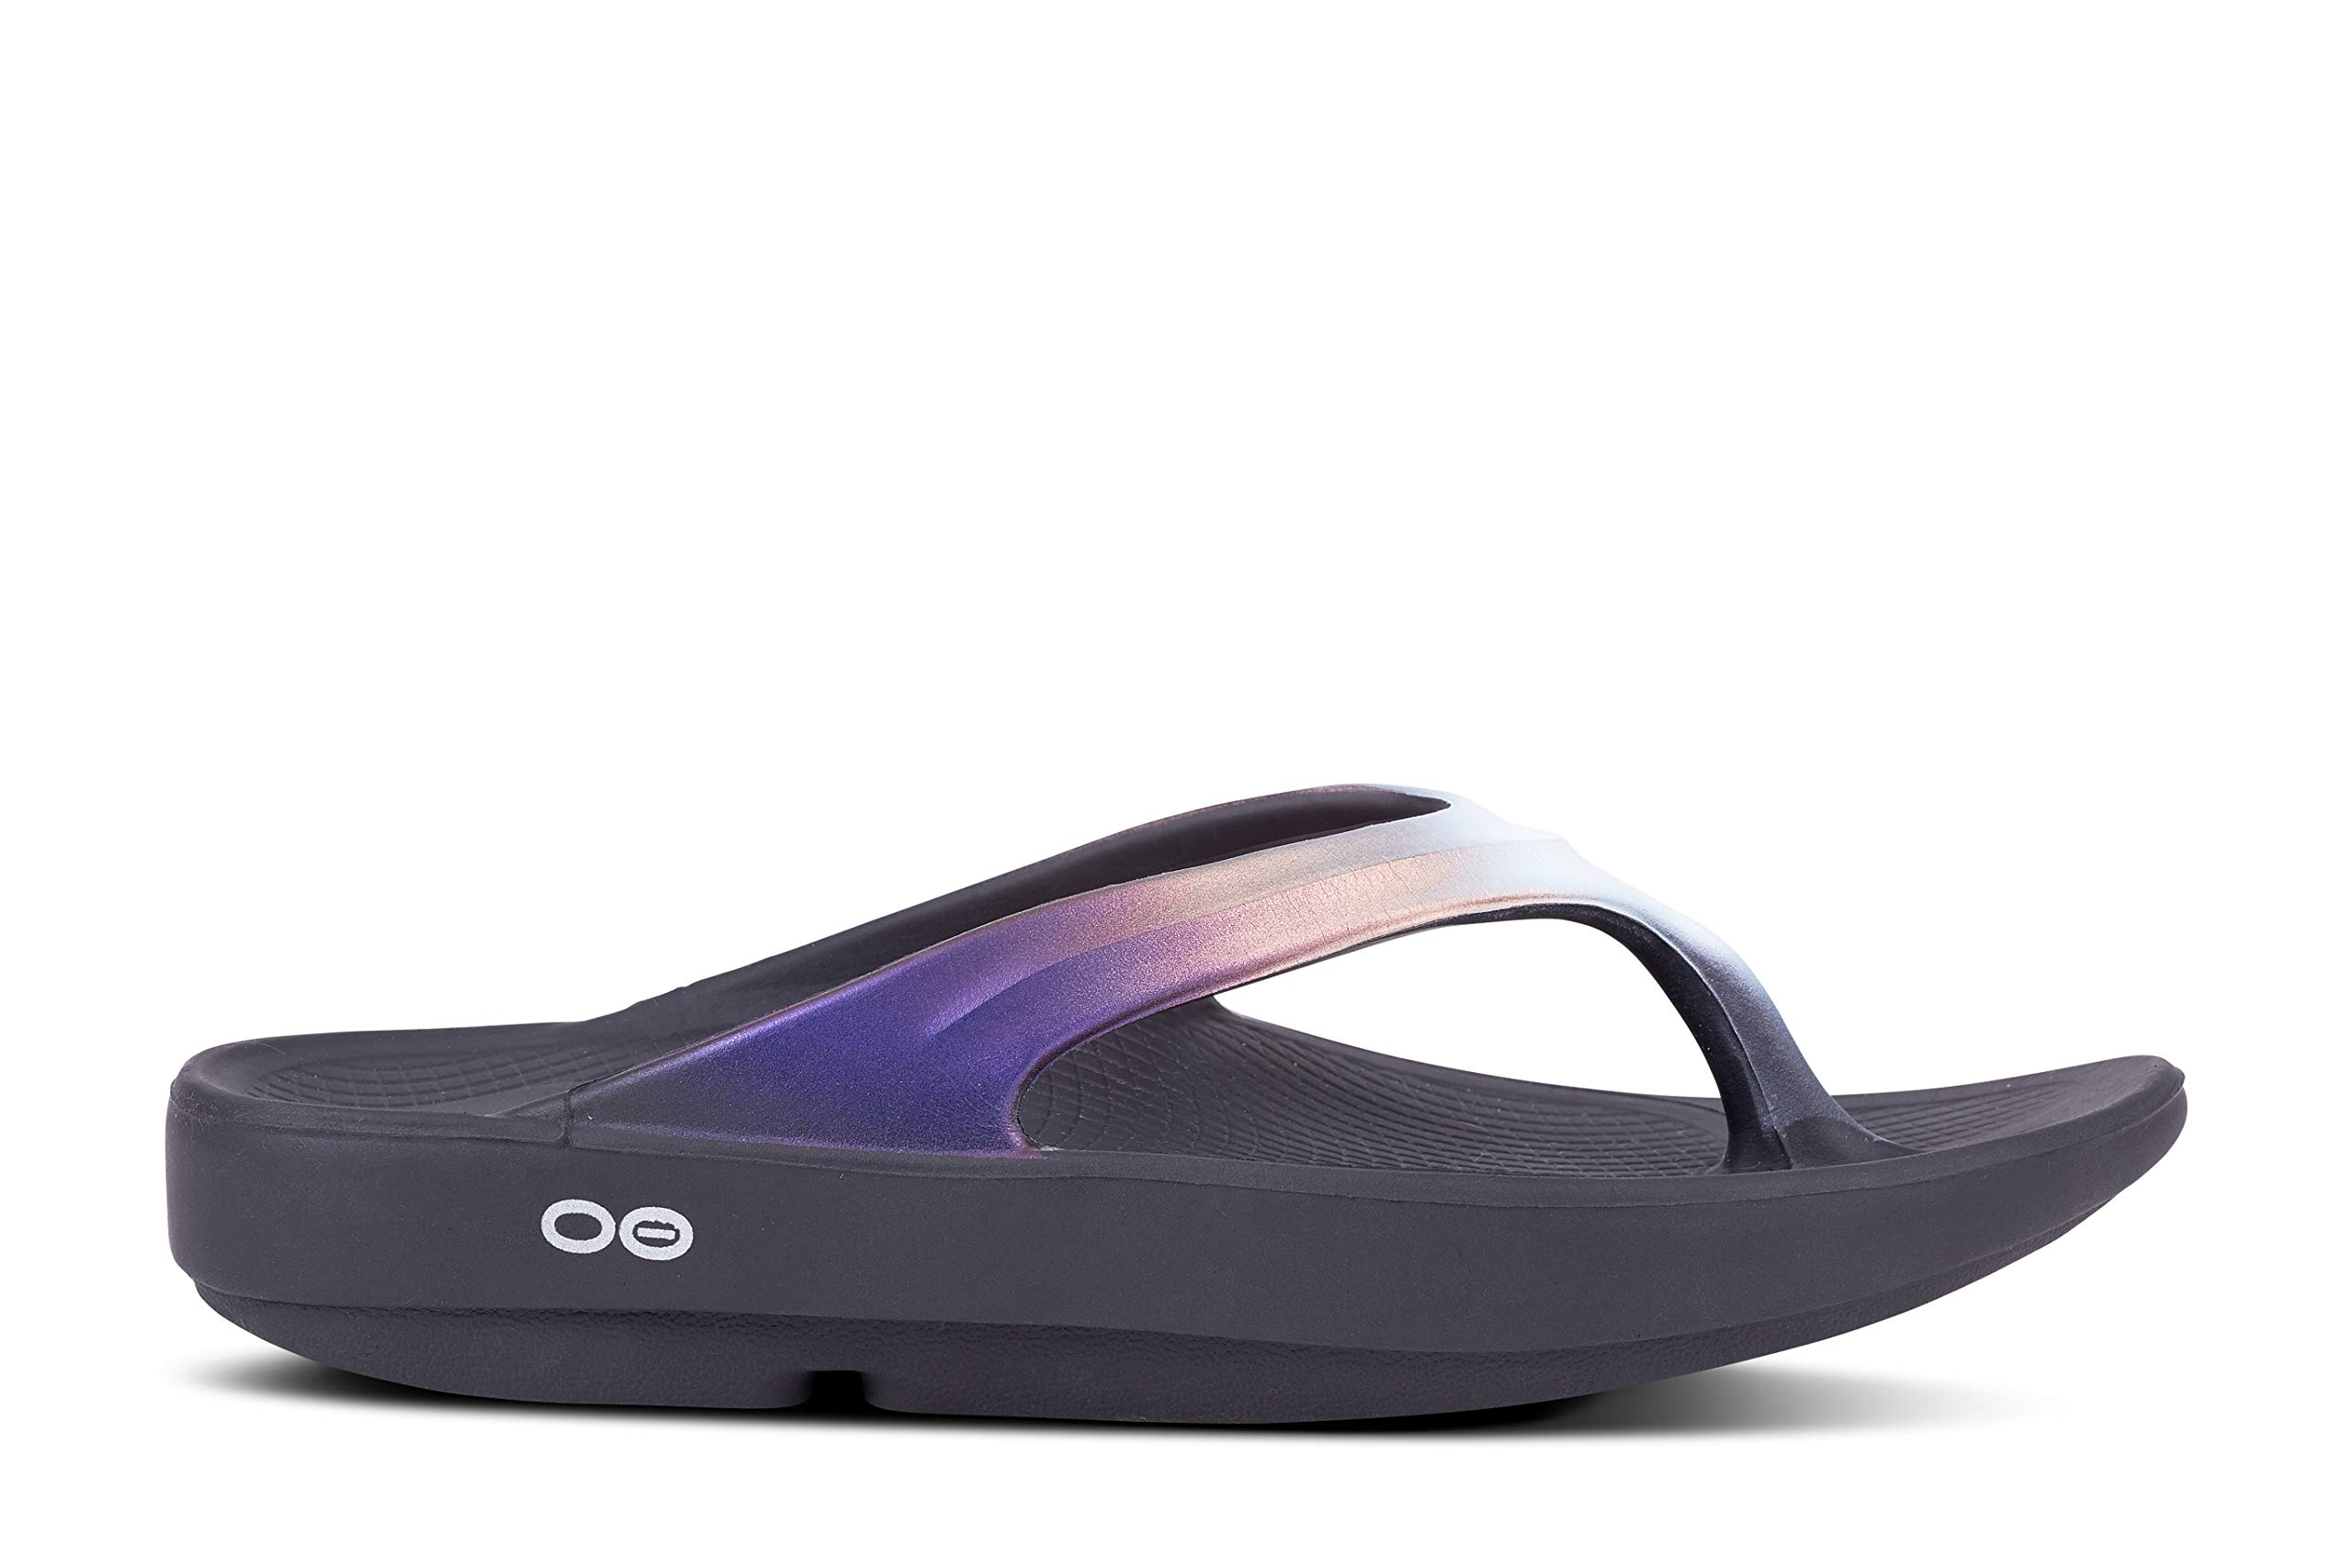 OOFOS - Women's OOlala Satin - Post Run Sports Recovery Thong Sandal - Black/Calypso - W8